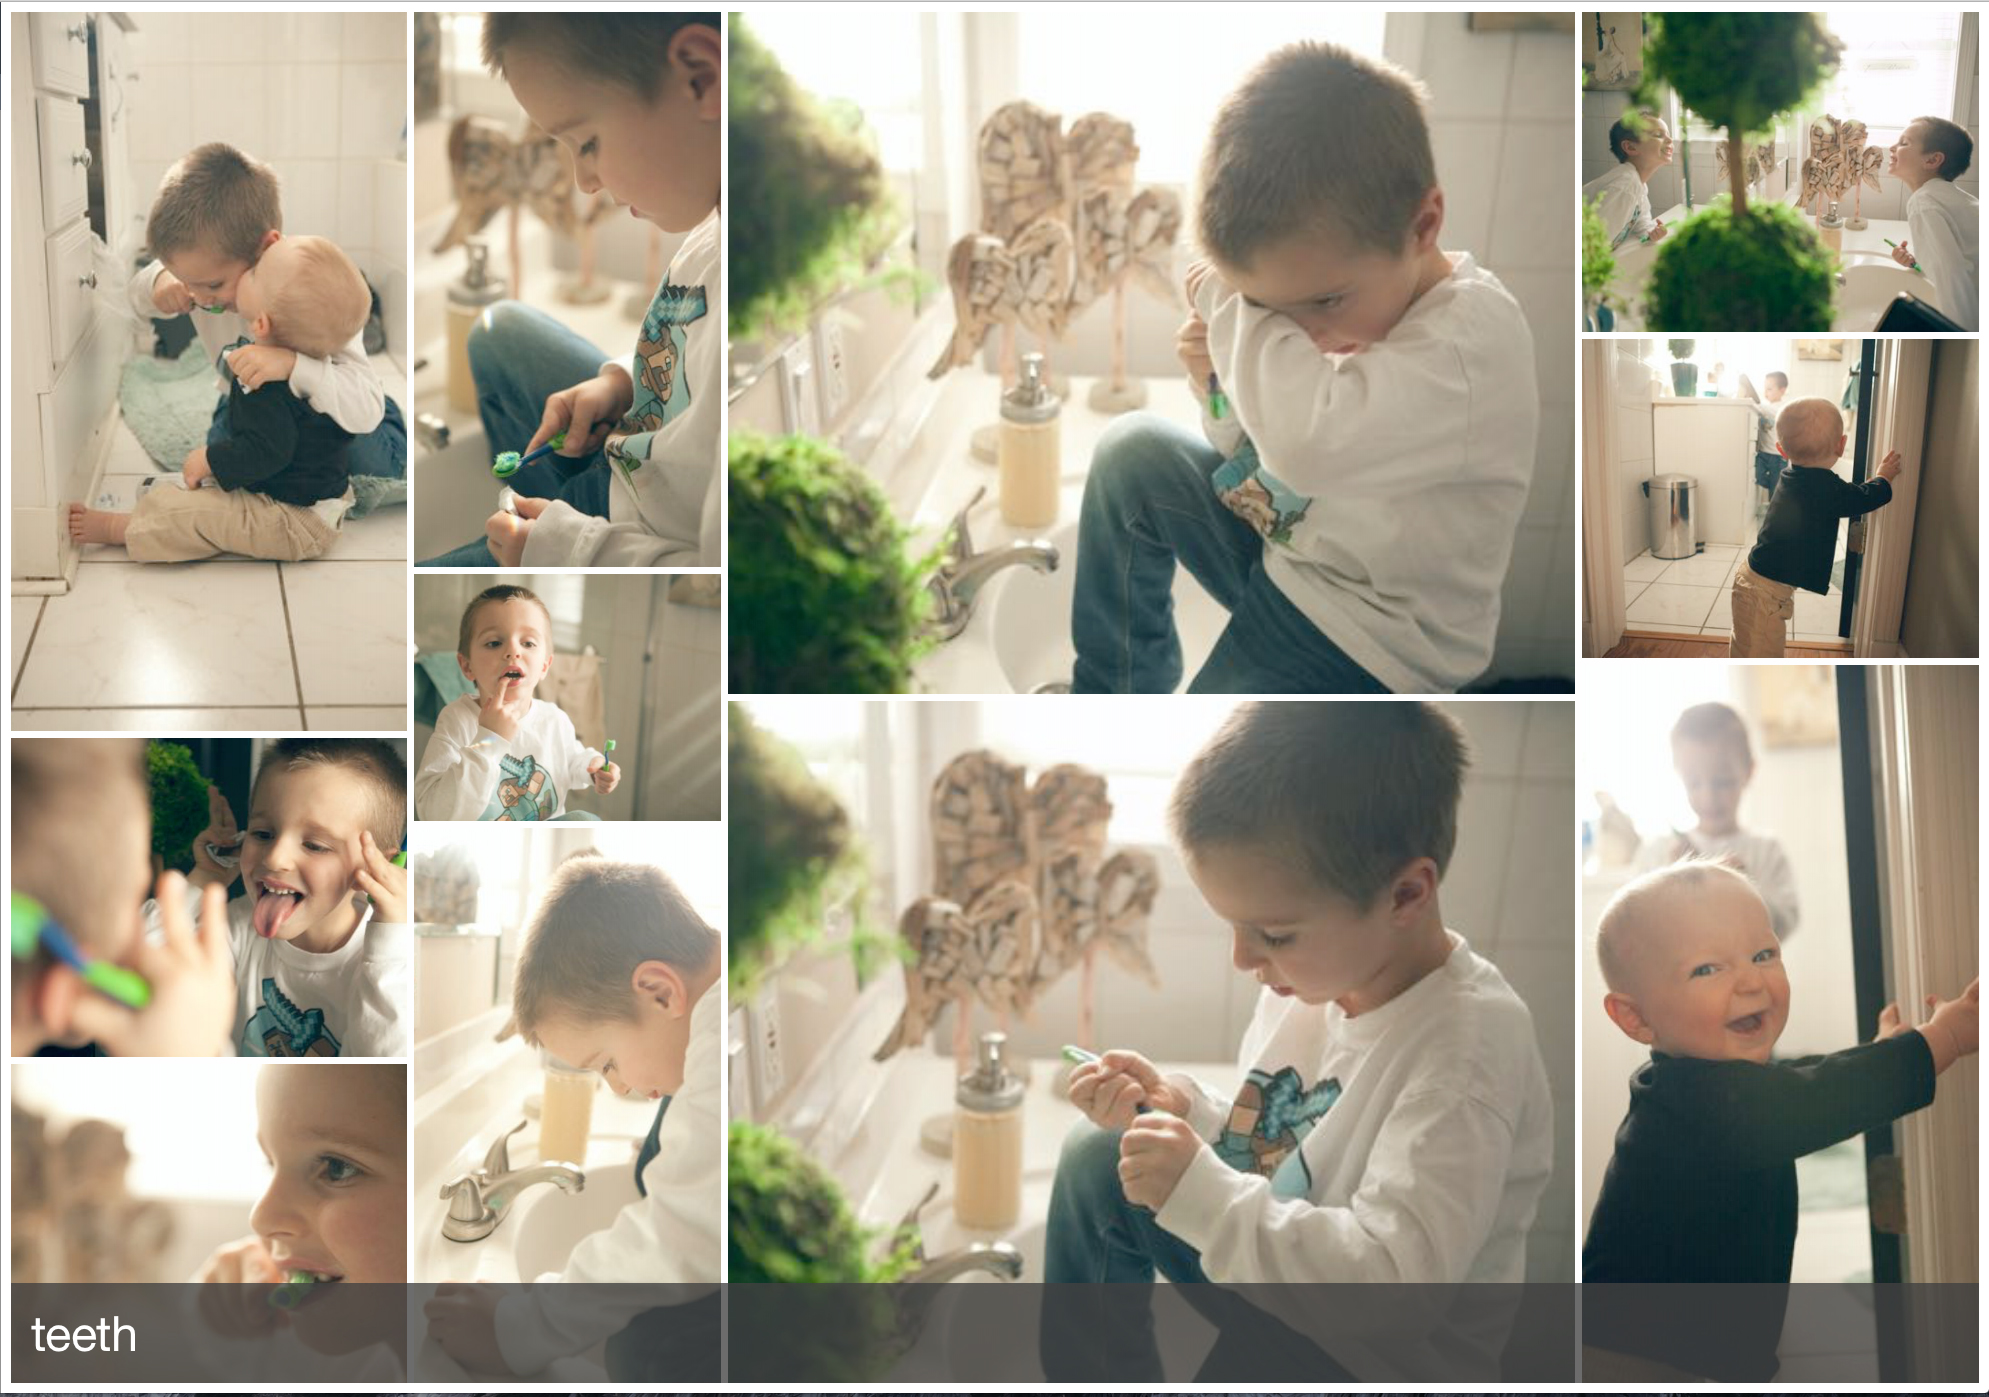 Capture a series of images that tell the story!